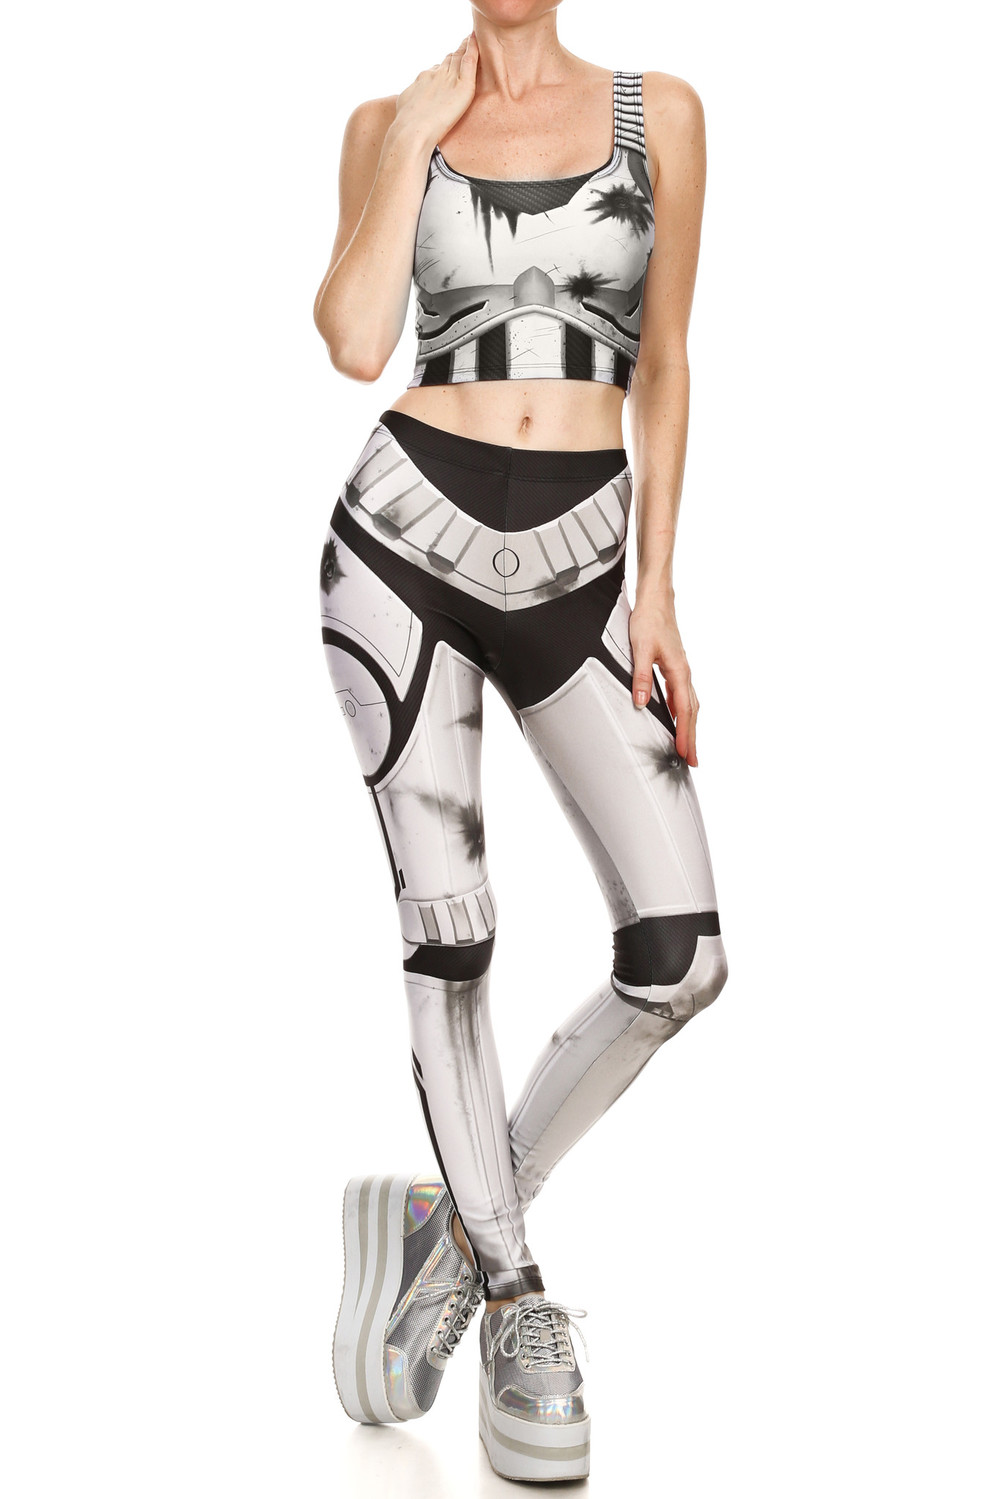 66b57284528f0 Stormtrooper Leggings and Crop Tops Won t Protect You From Laser ...